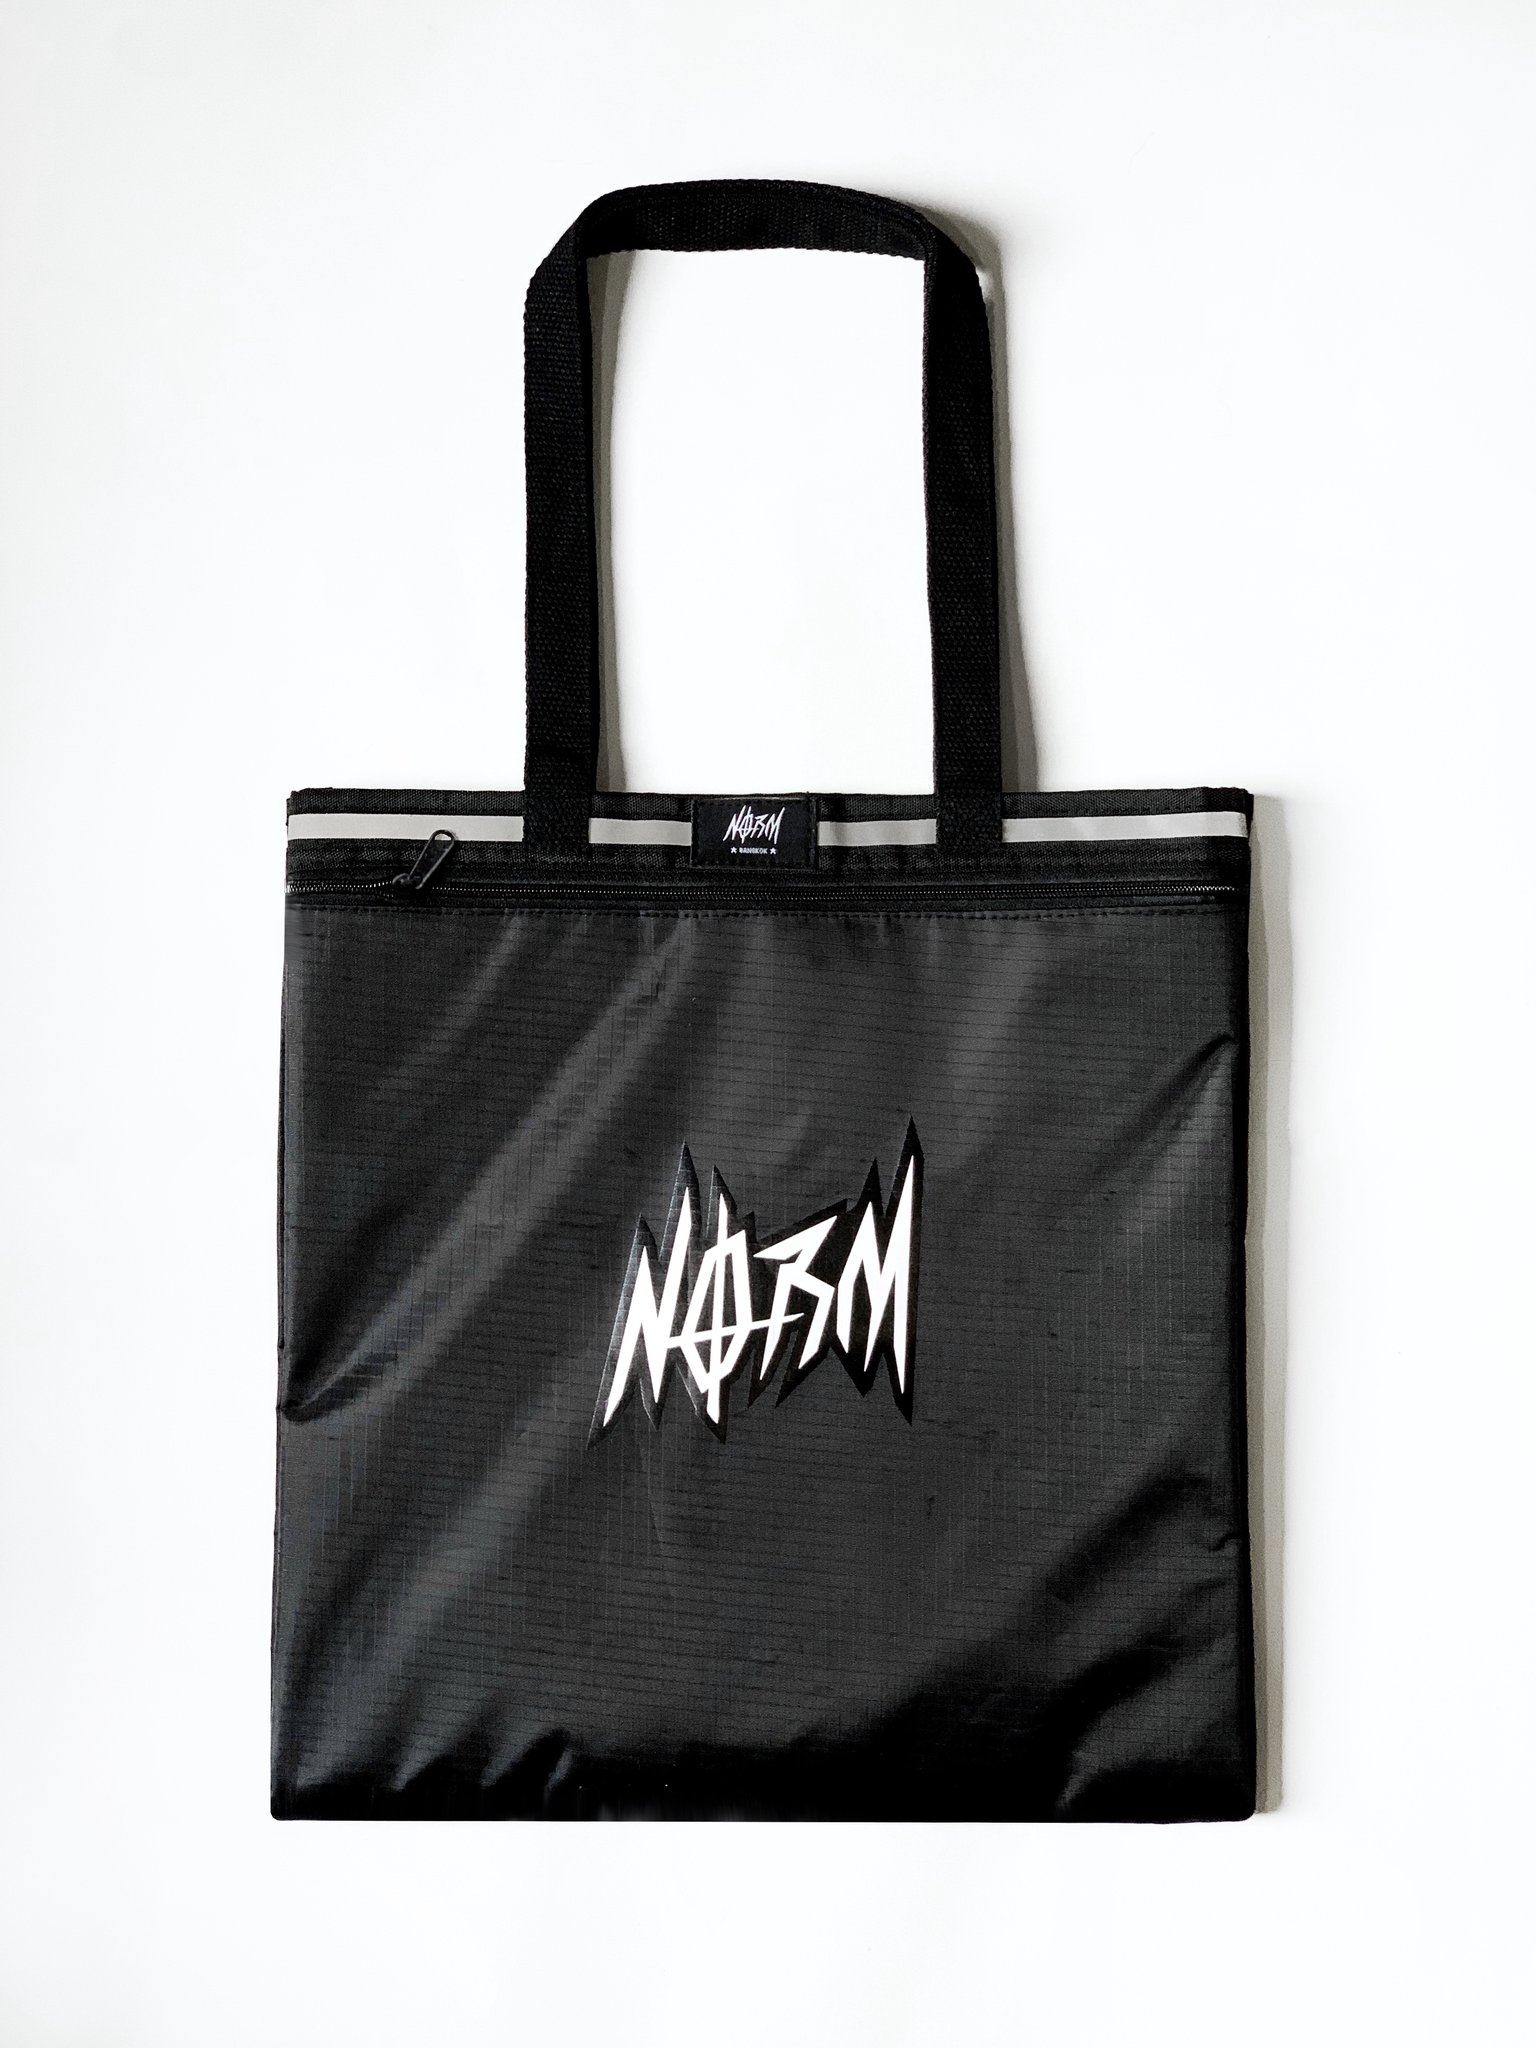 T-Tote bag BLACK